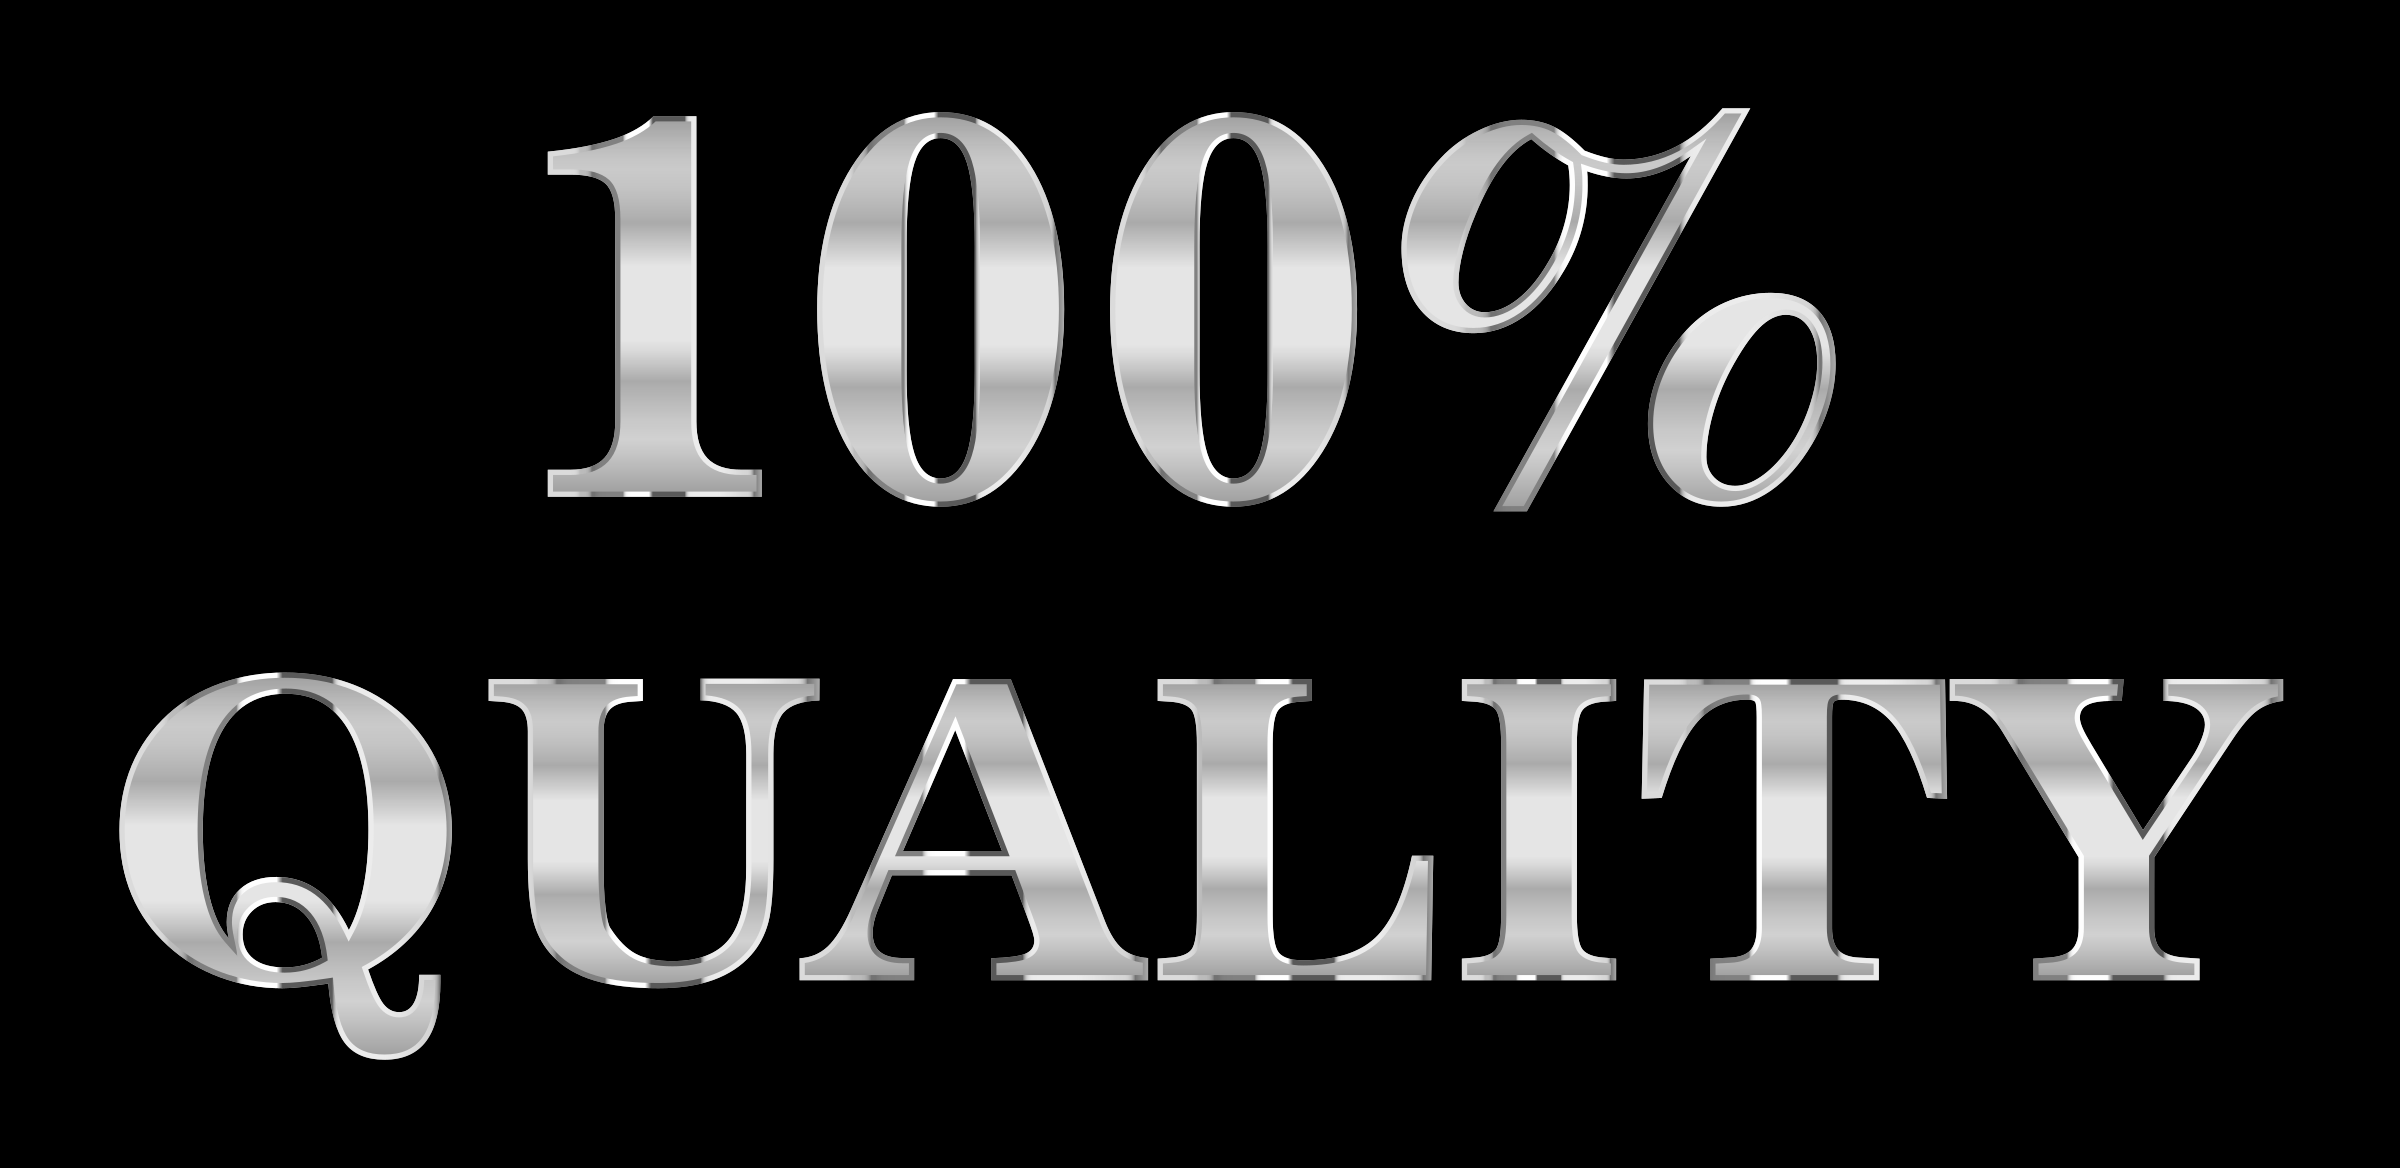 100 Percent Quality Typography Steel by GDJ